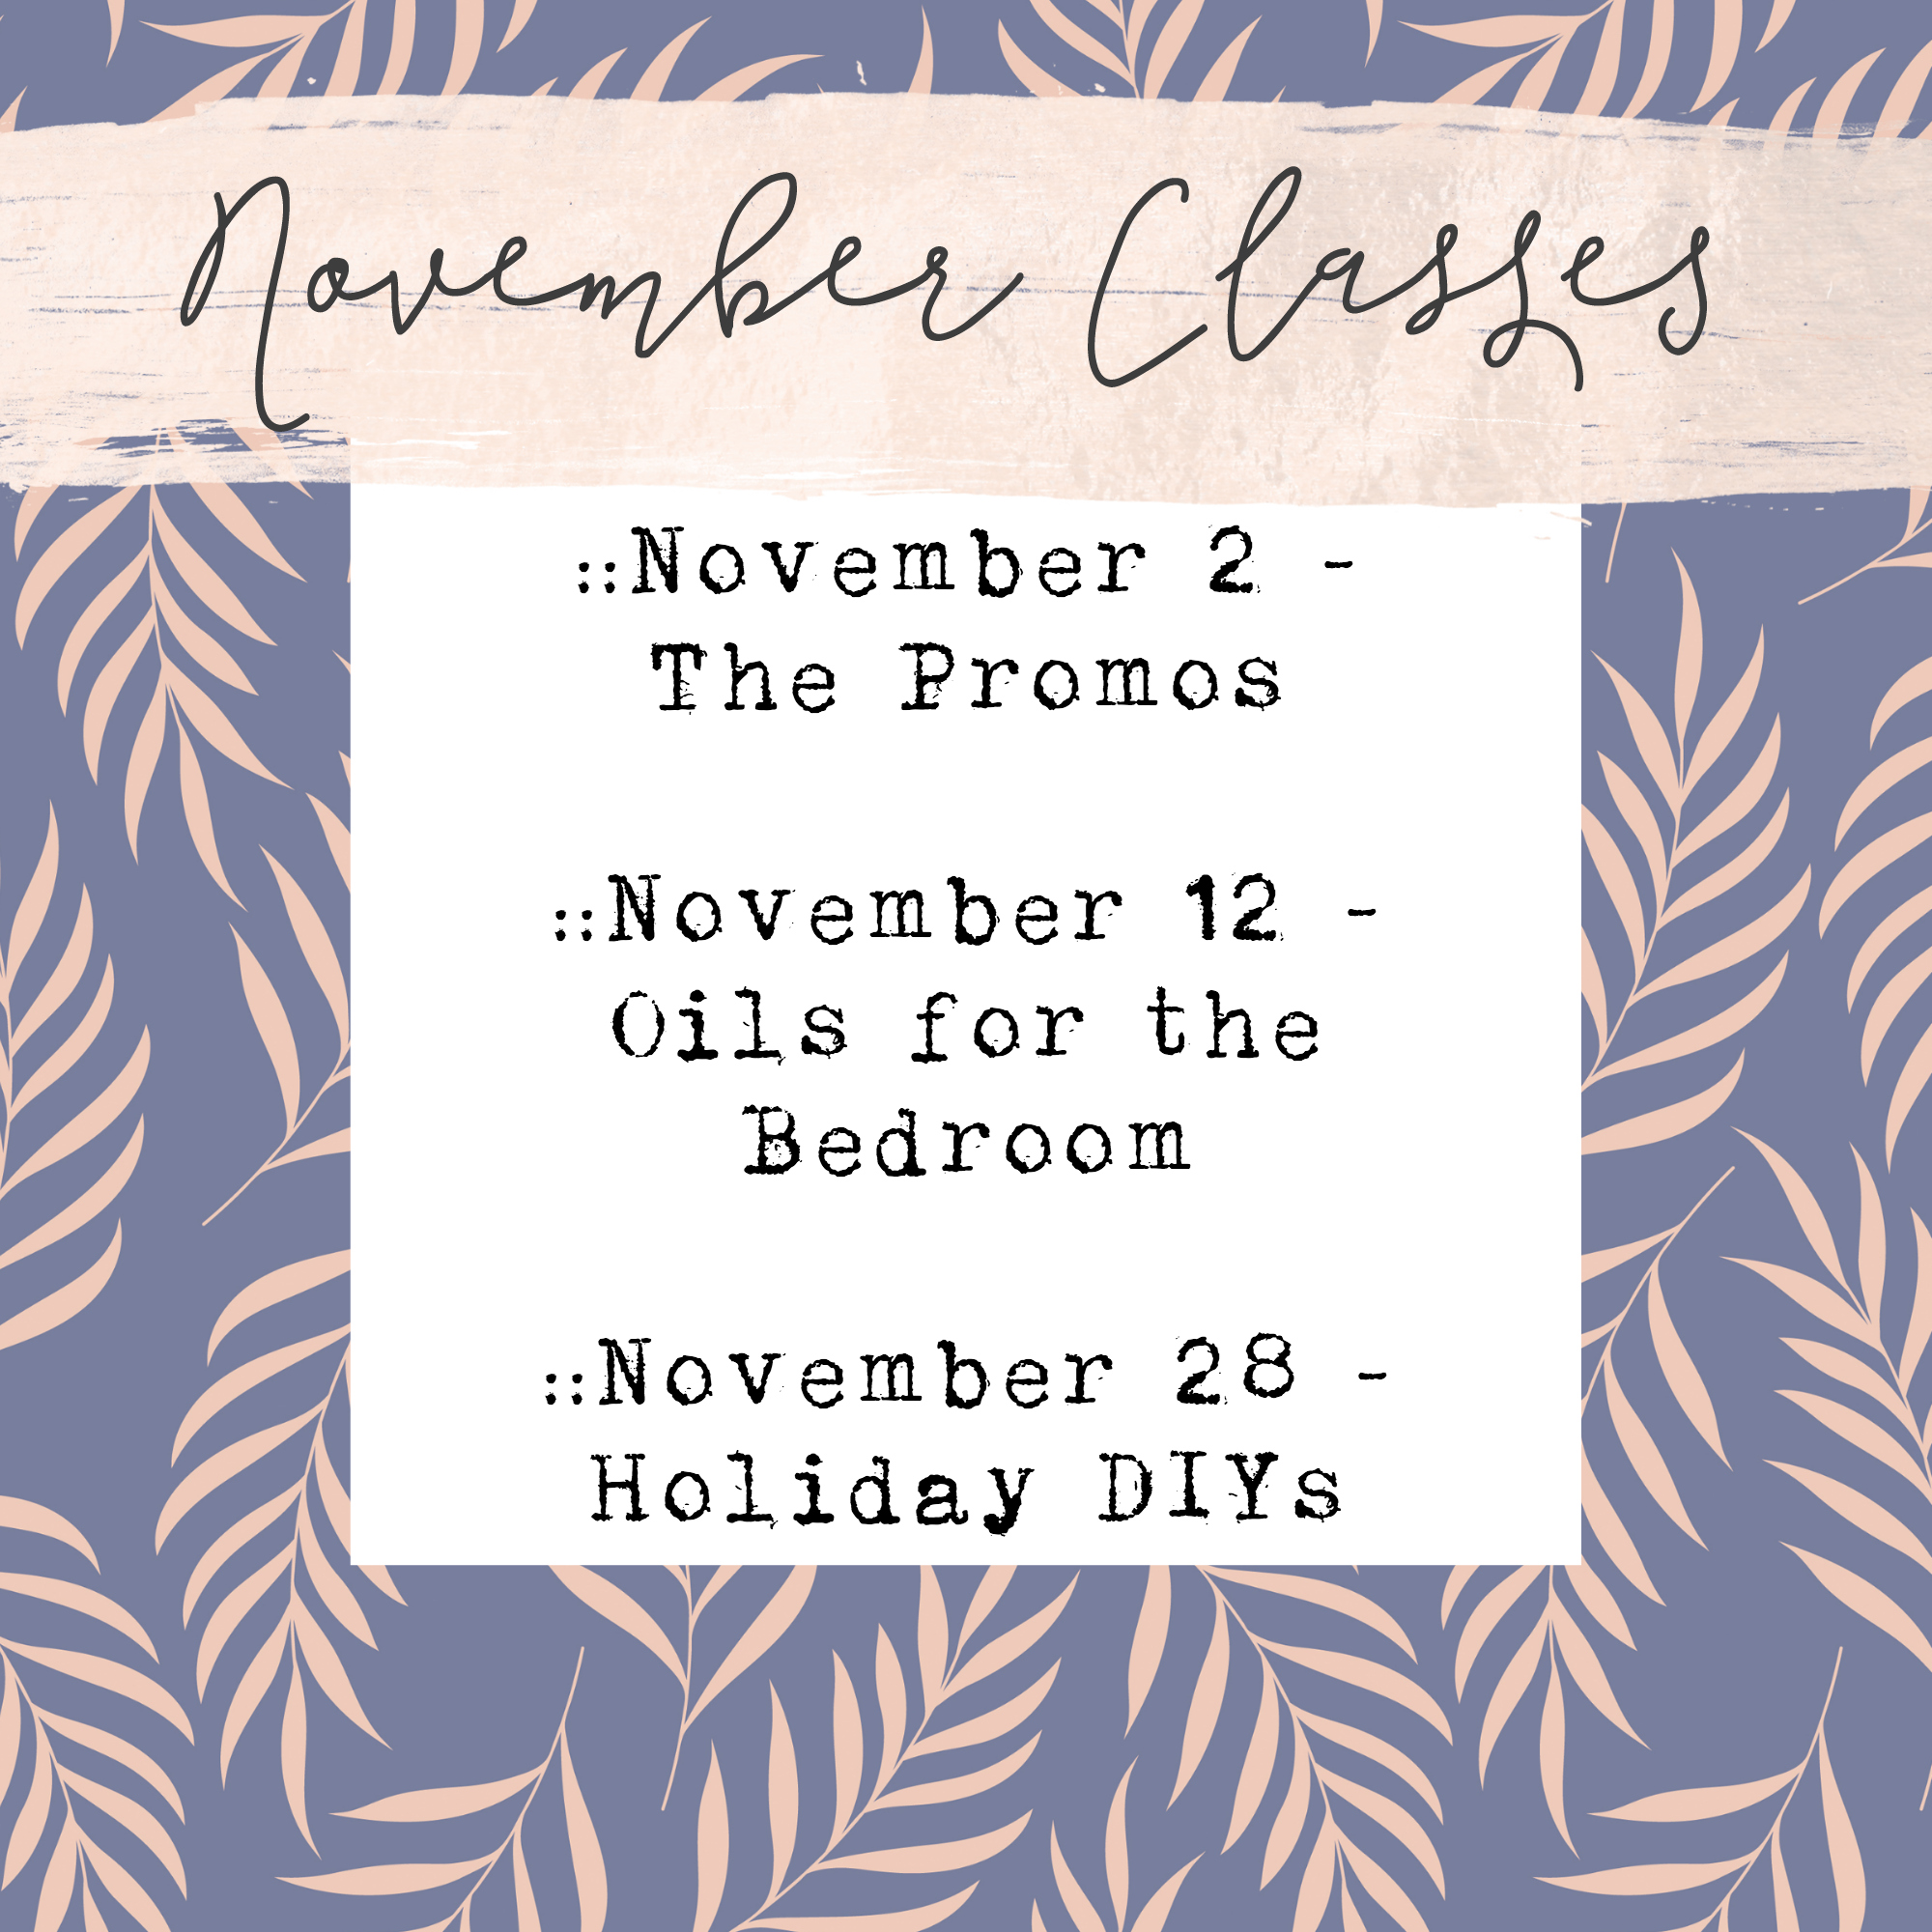 COMING UP! - We have several exciting classes coming up for you this month! Make sure that you're a member of our Facebook group to get the invites for each event!Not a member of our Ivy and Twine Facebook Group?You can access that right here:https://www.facebook.com/groups/1105943996090480/